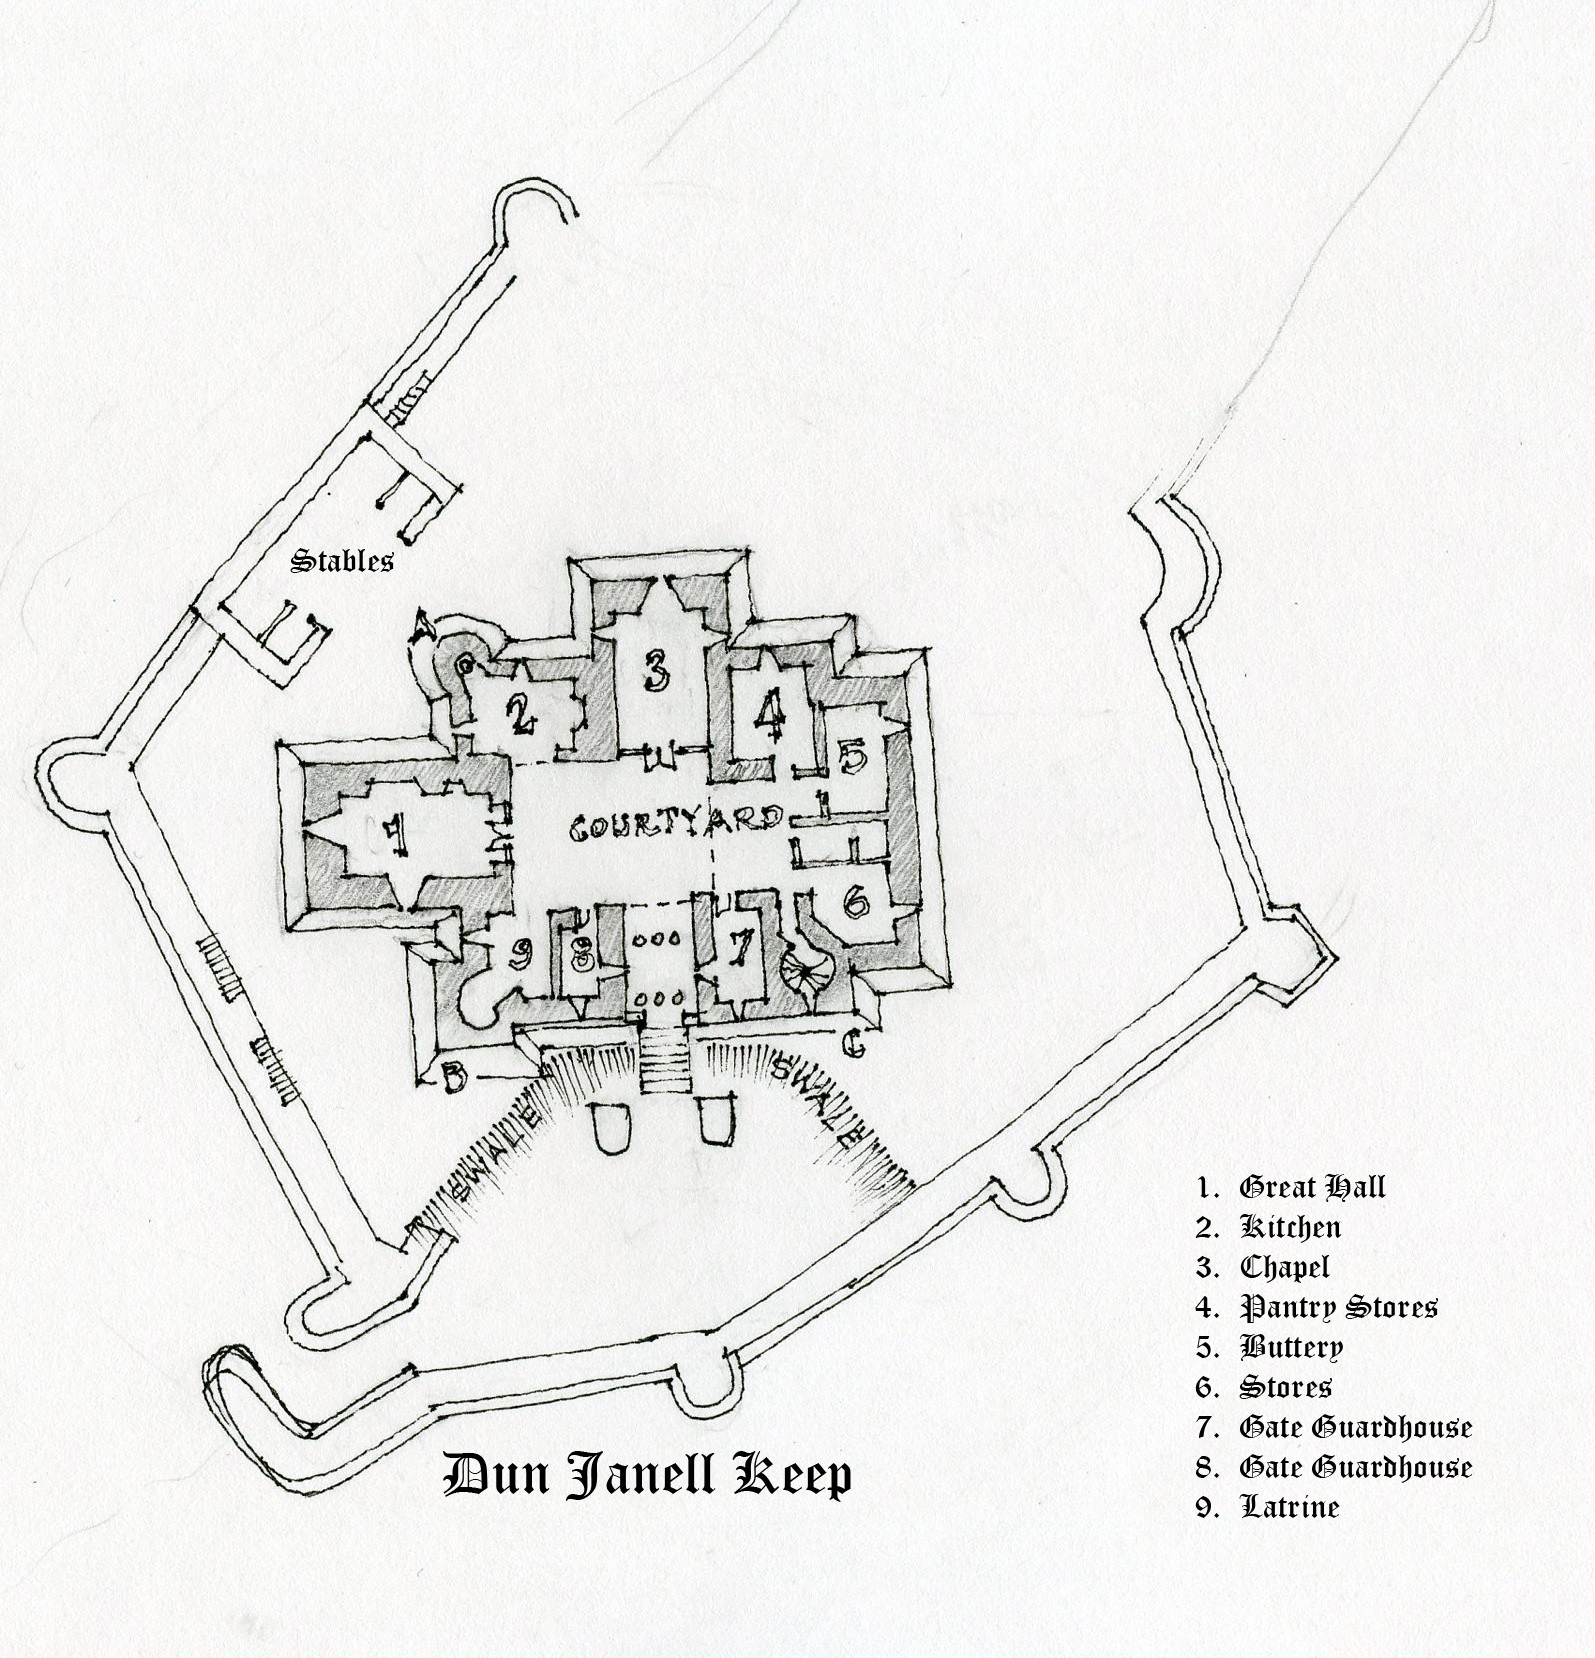 dun jenell khttp://www.cartographersguild.com/album.php?albumid=4028&attachmentid=51571eep